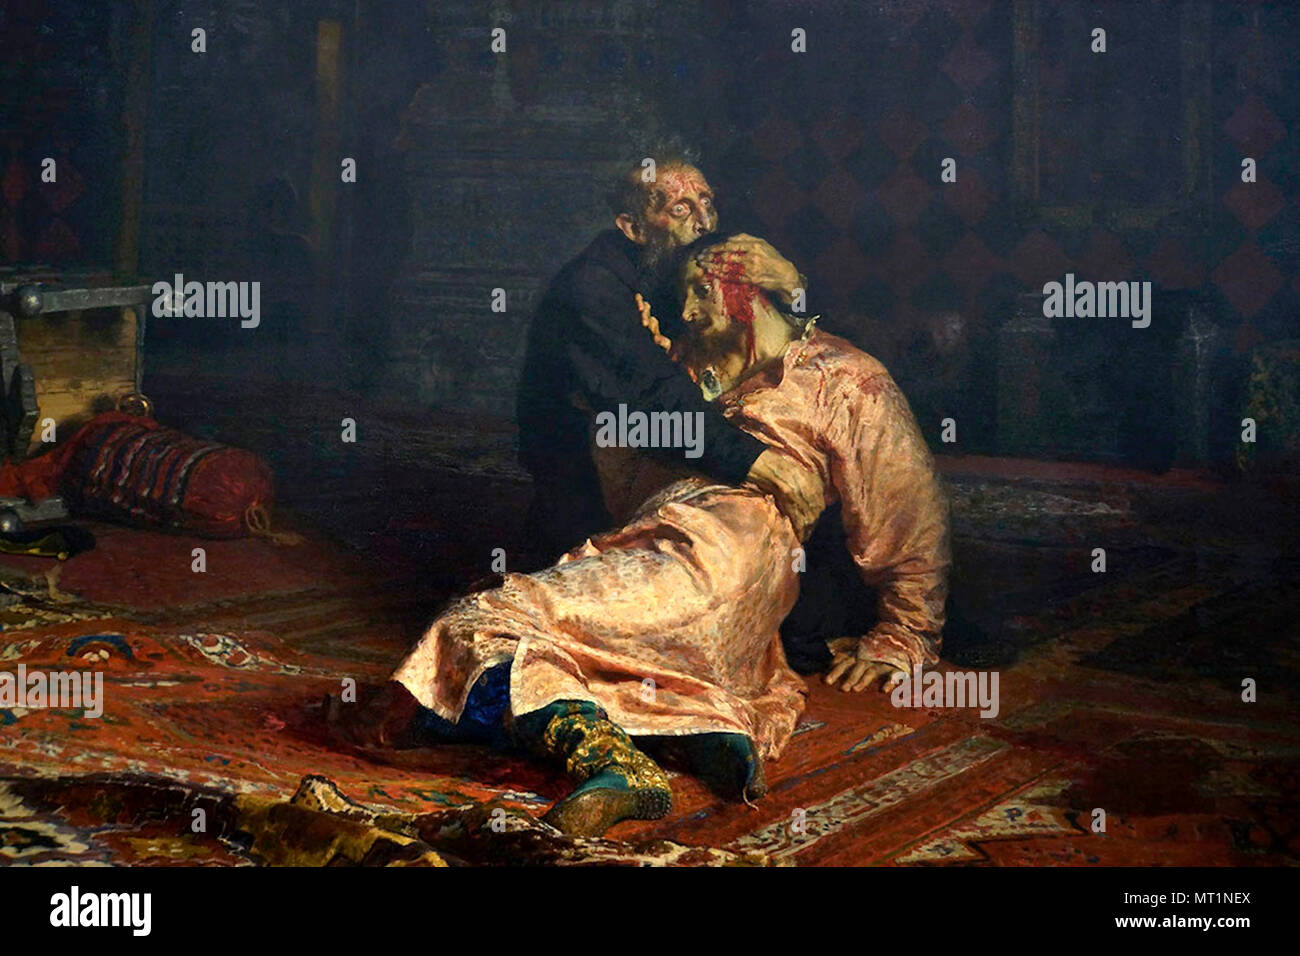 'Ivan the Terrible killing his son' painting by Ilya Repin, Ivan IV Vasilyevich (1530 – 1584), Ivan the Terrible - Stock Image